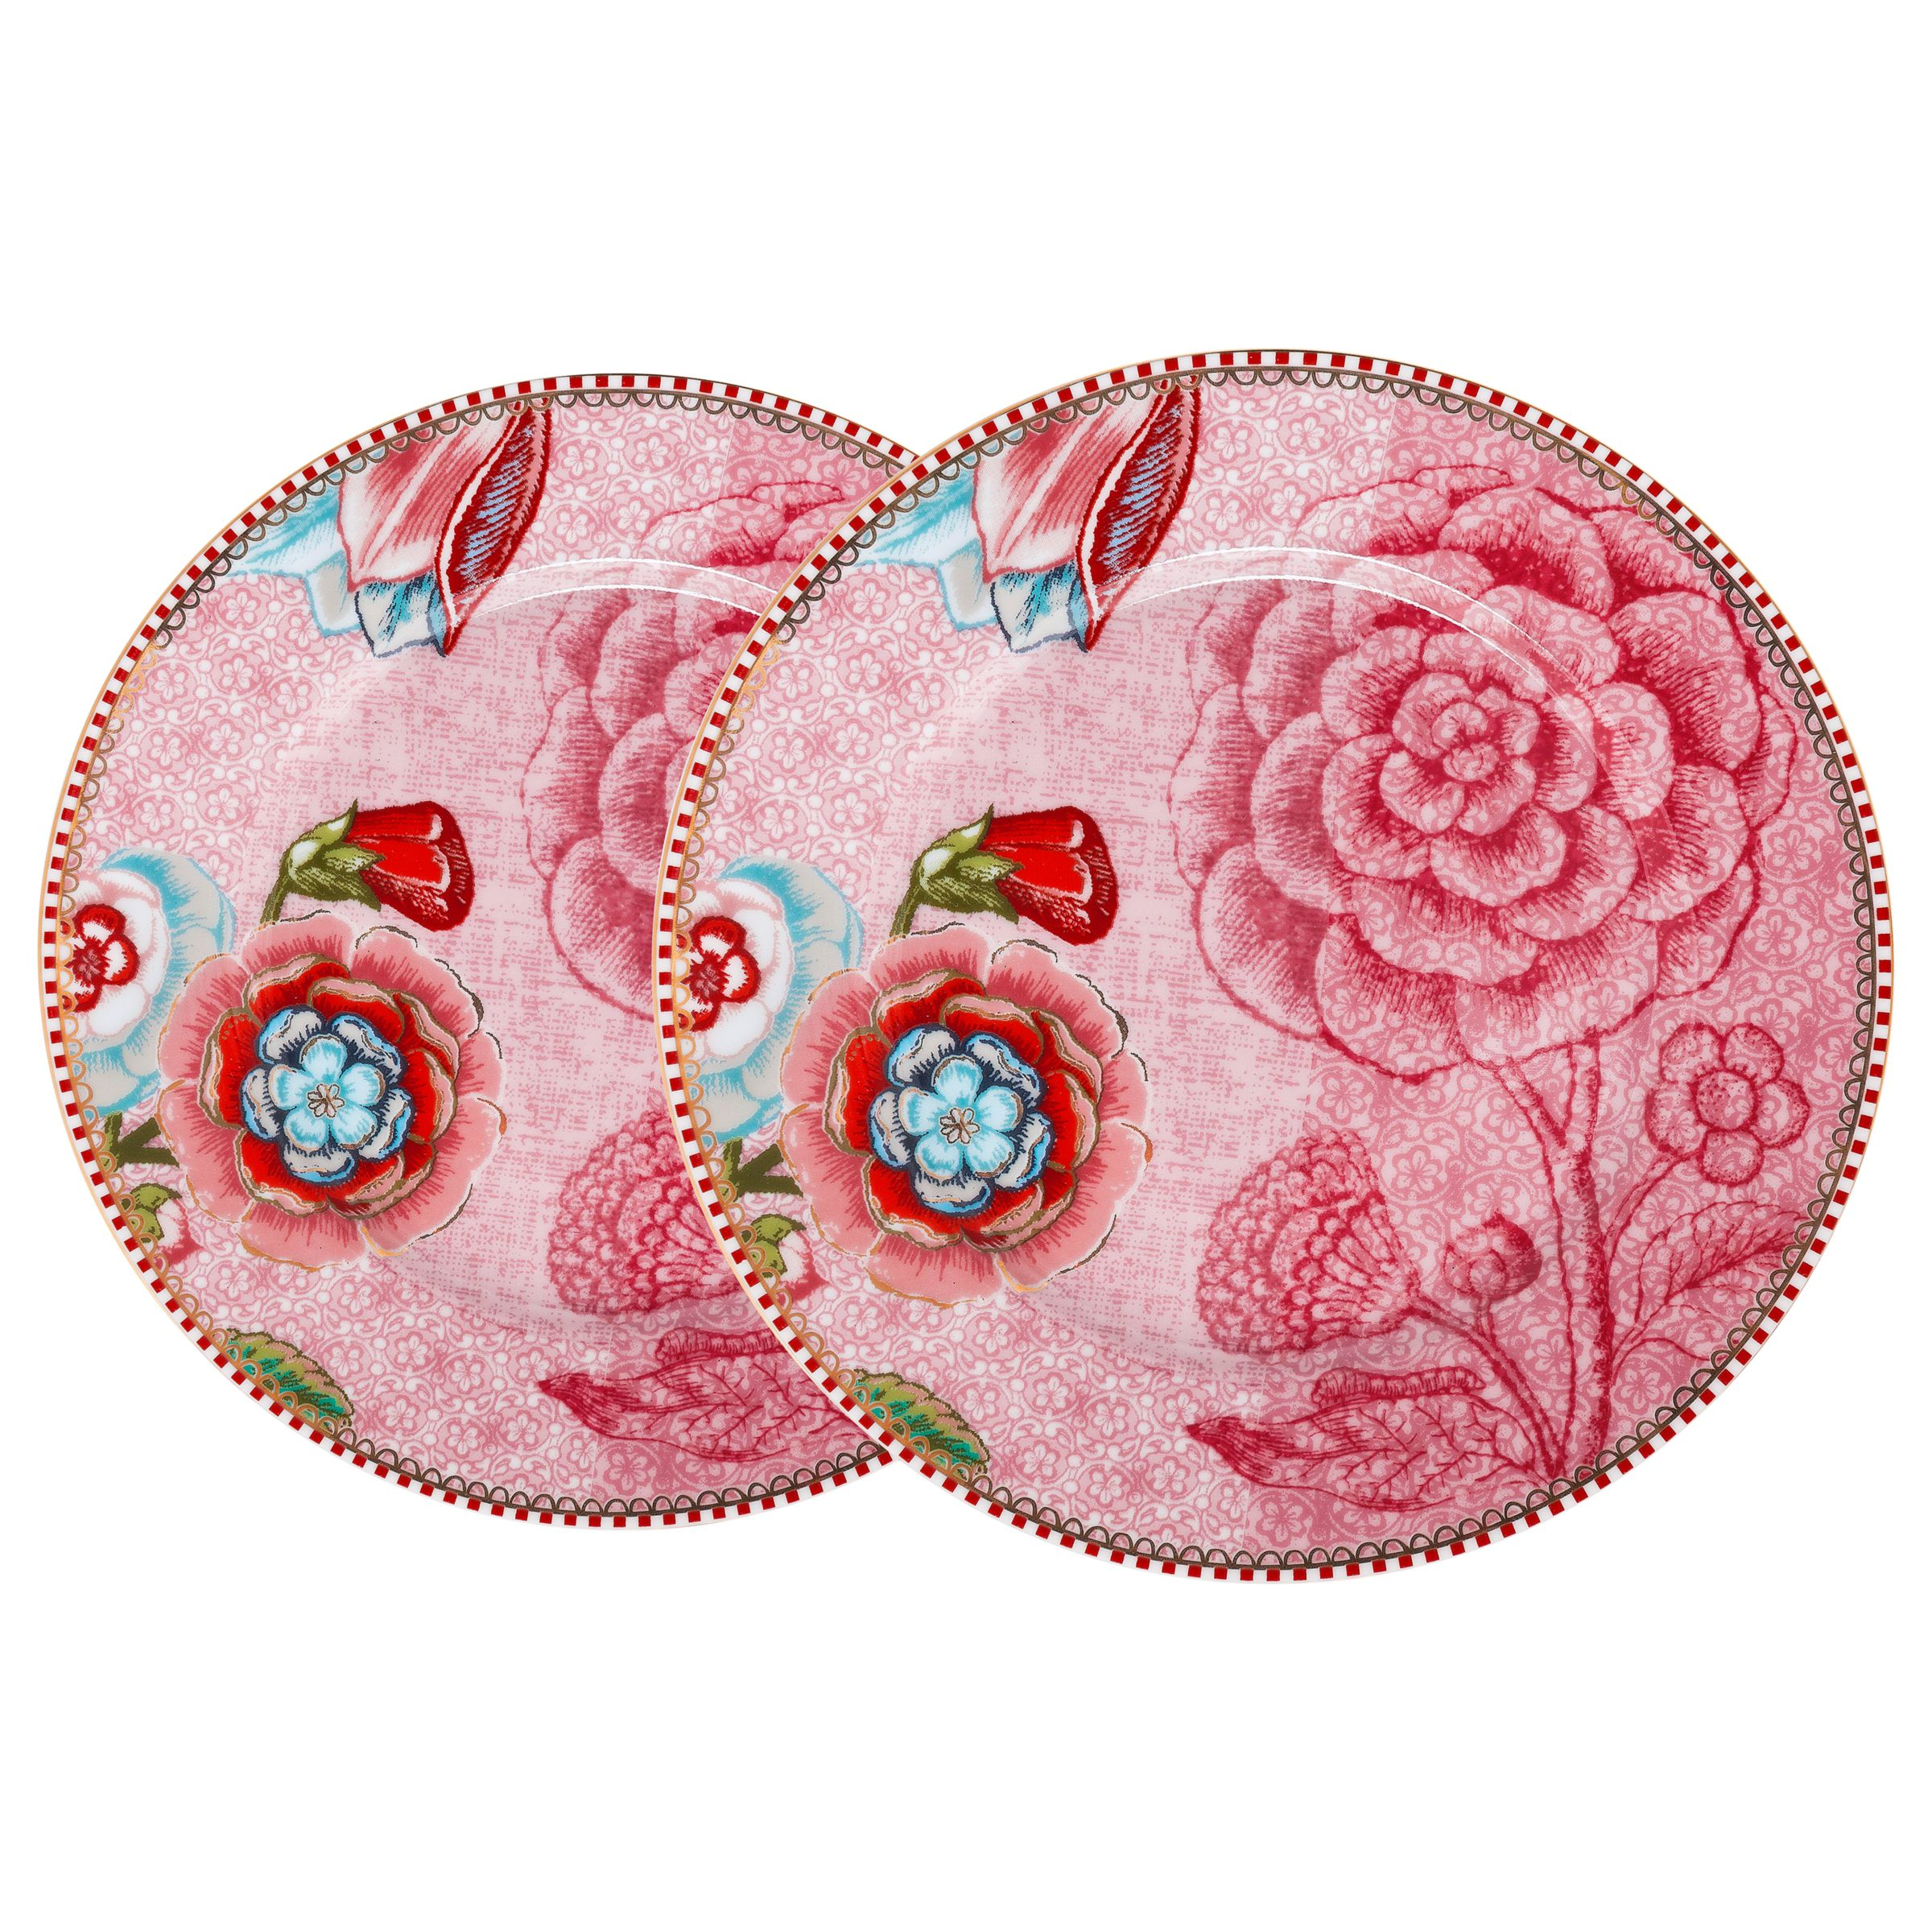 PiP Studio PiP Studio Spring To Life 17cm Plate, Set of 2